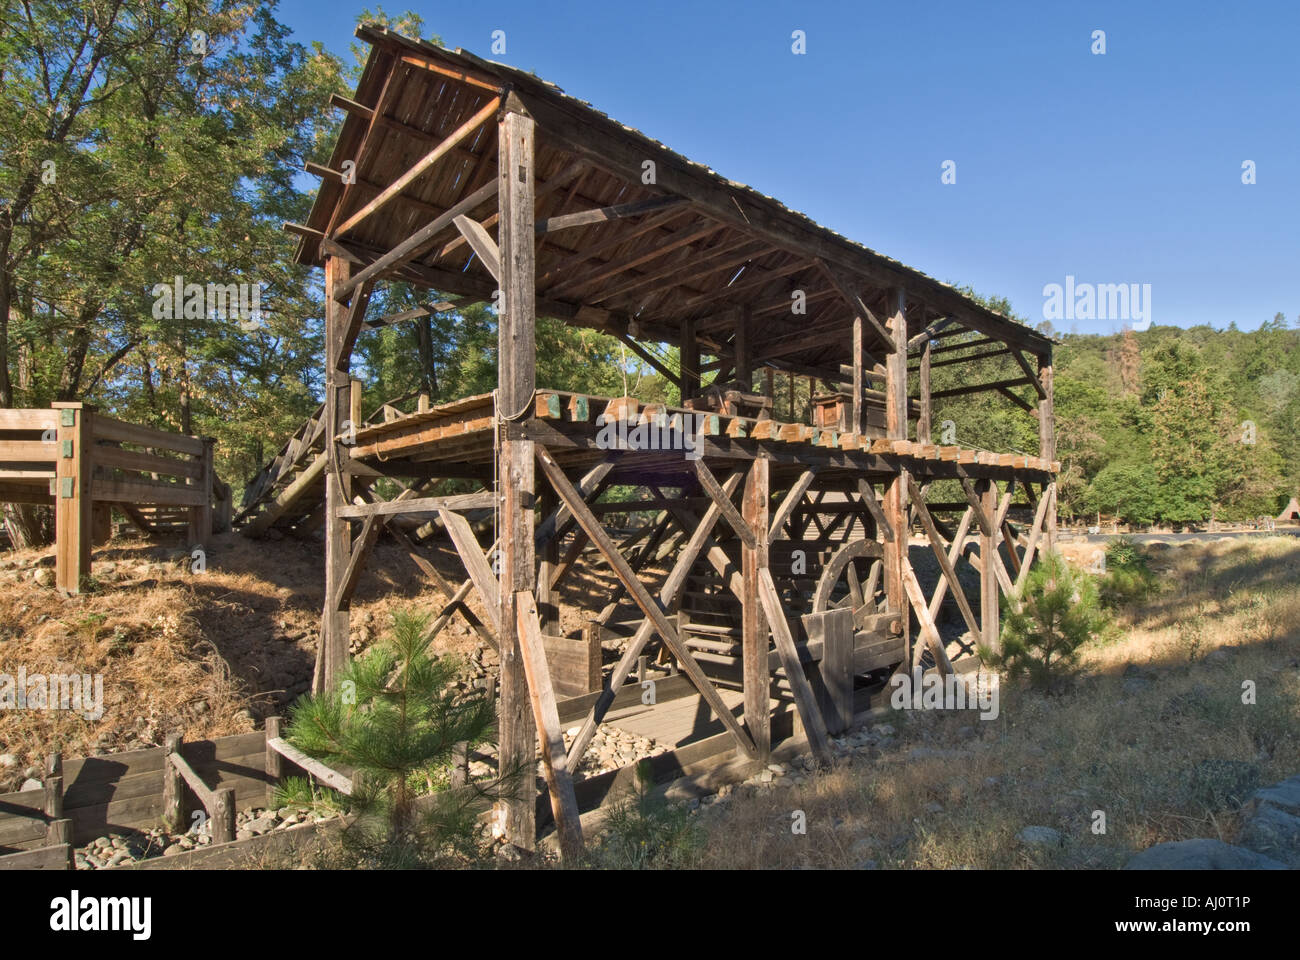 California Gold Country Coloma Marshall Gold Discovery State Historic Park sawmill replicated from original drawings - Stock Image